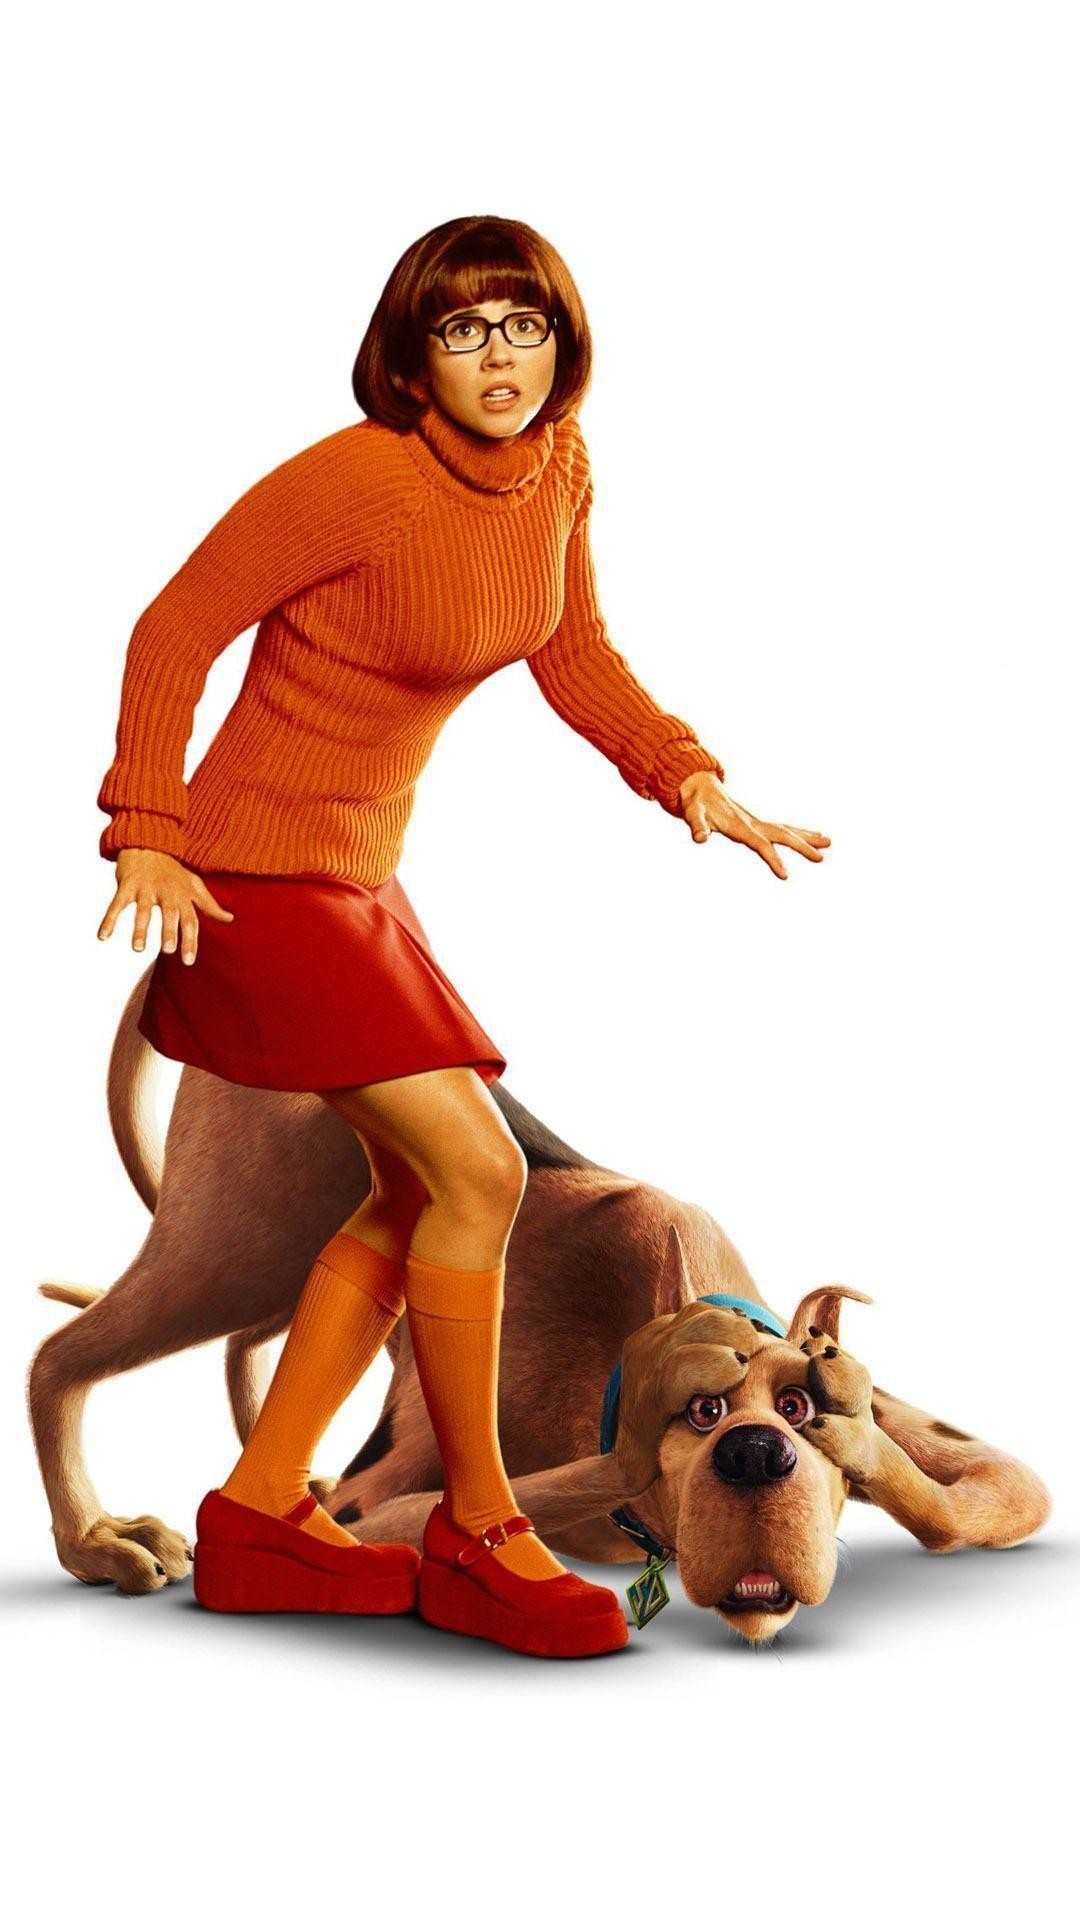 1080x1920 Velma Dinkley and Scooby-Doo Mobile Wallpaper 11902